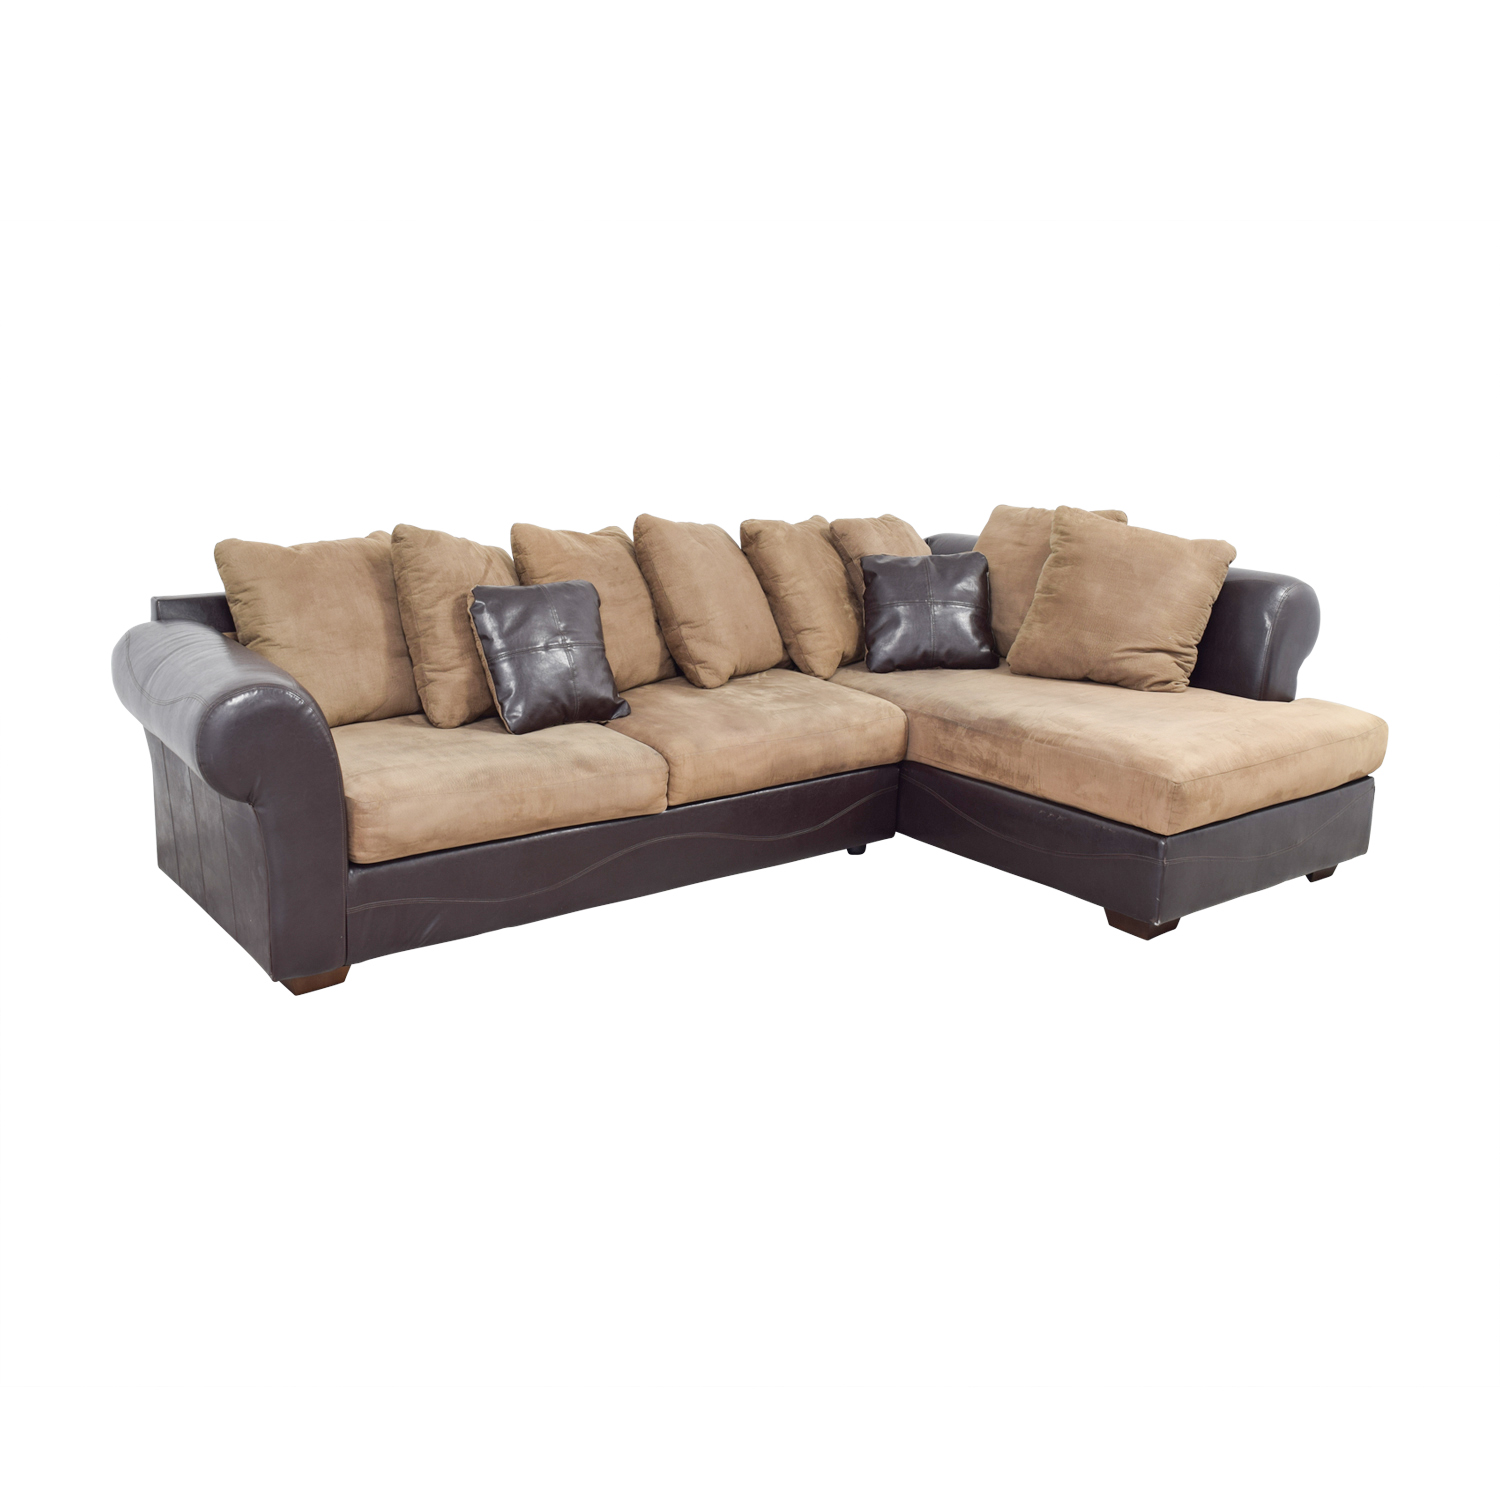 Ashley Furniture Ashley Furniture Brown Leather and Tan Microfiber Chaise Sectional nj